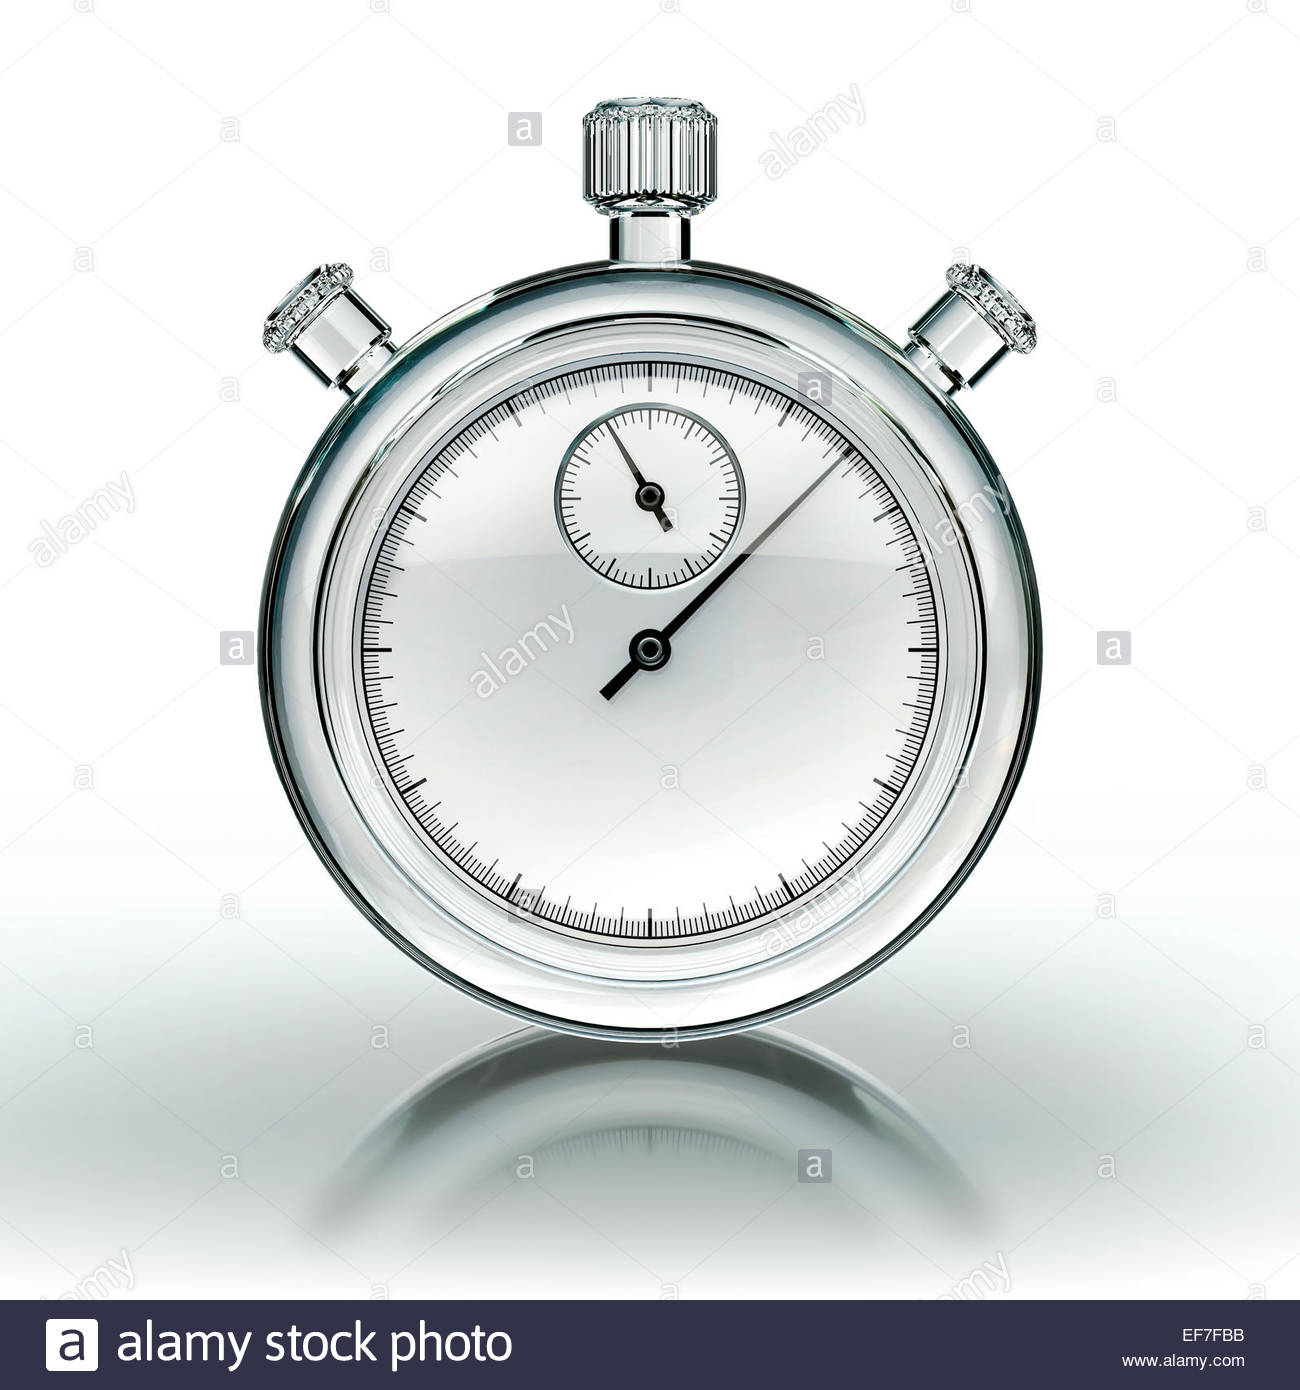 Glass stopwatch on white background - Stock Image